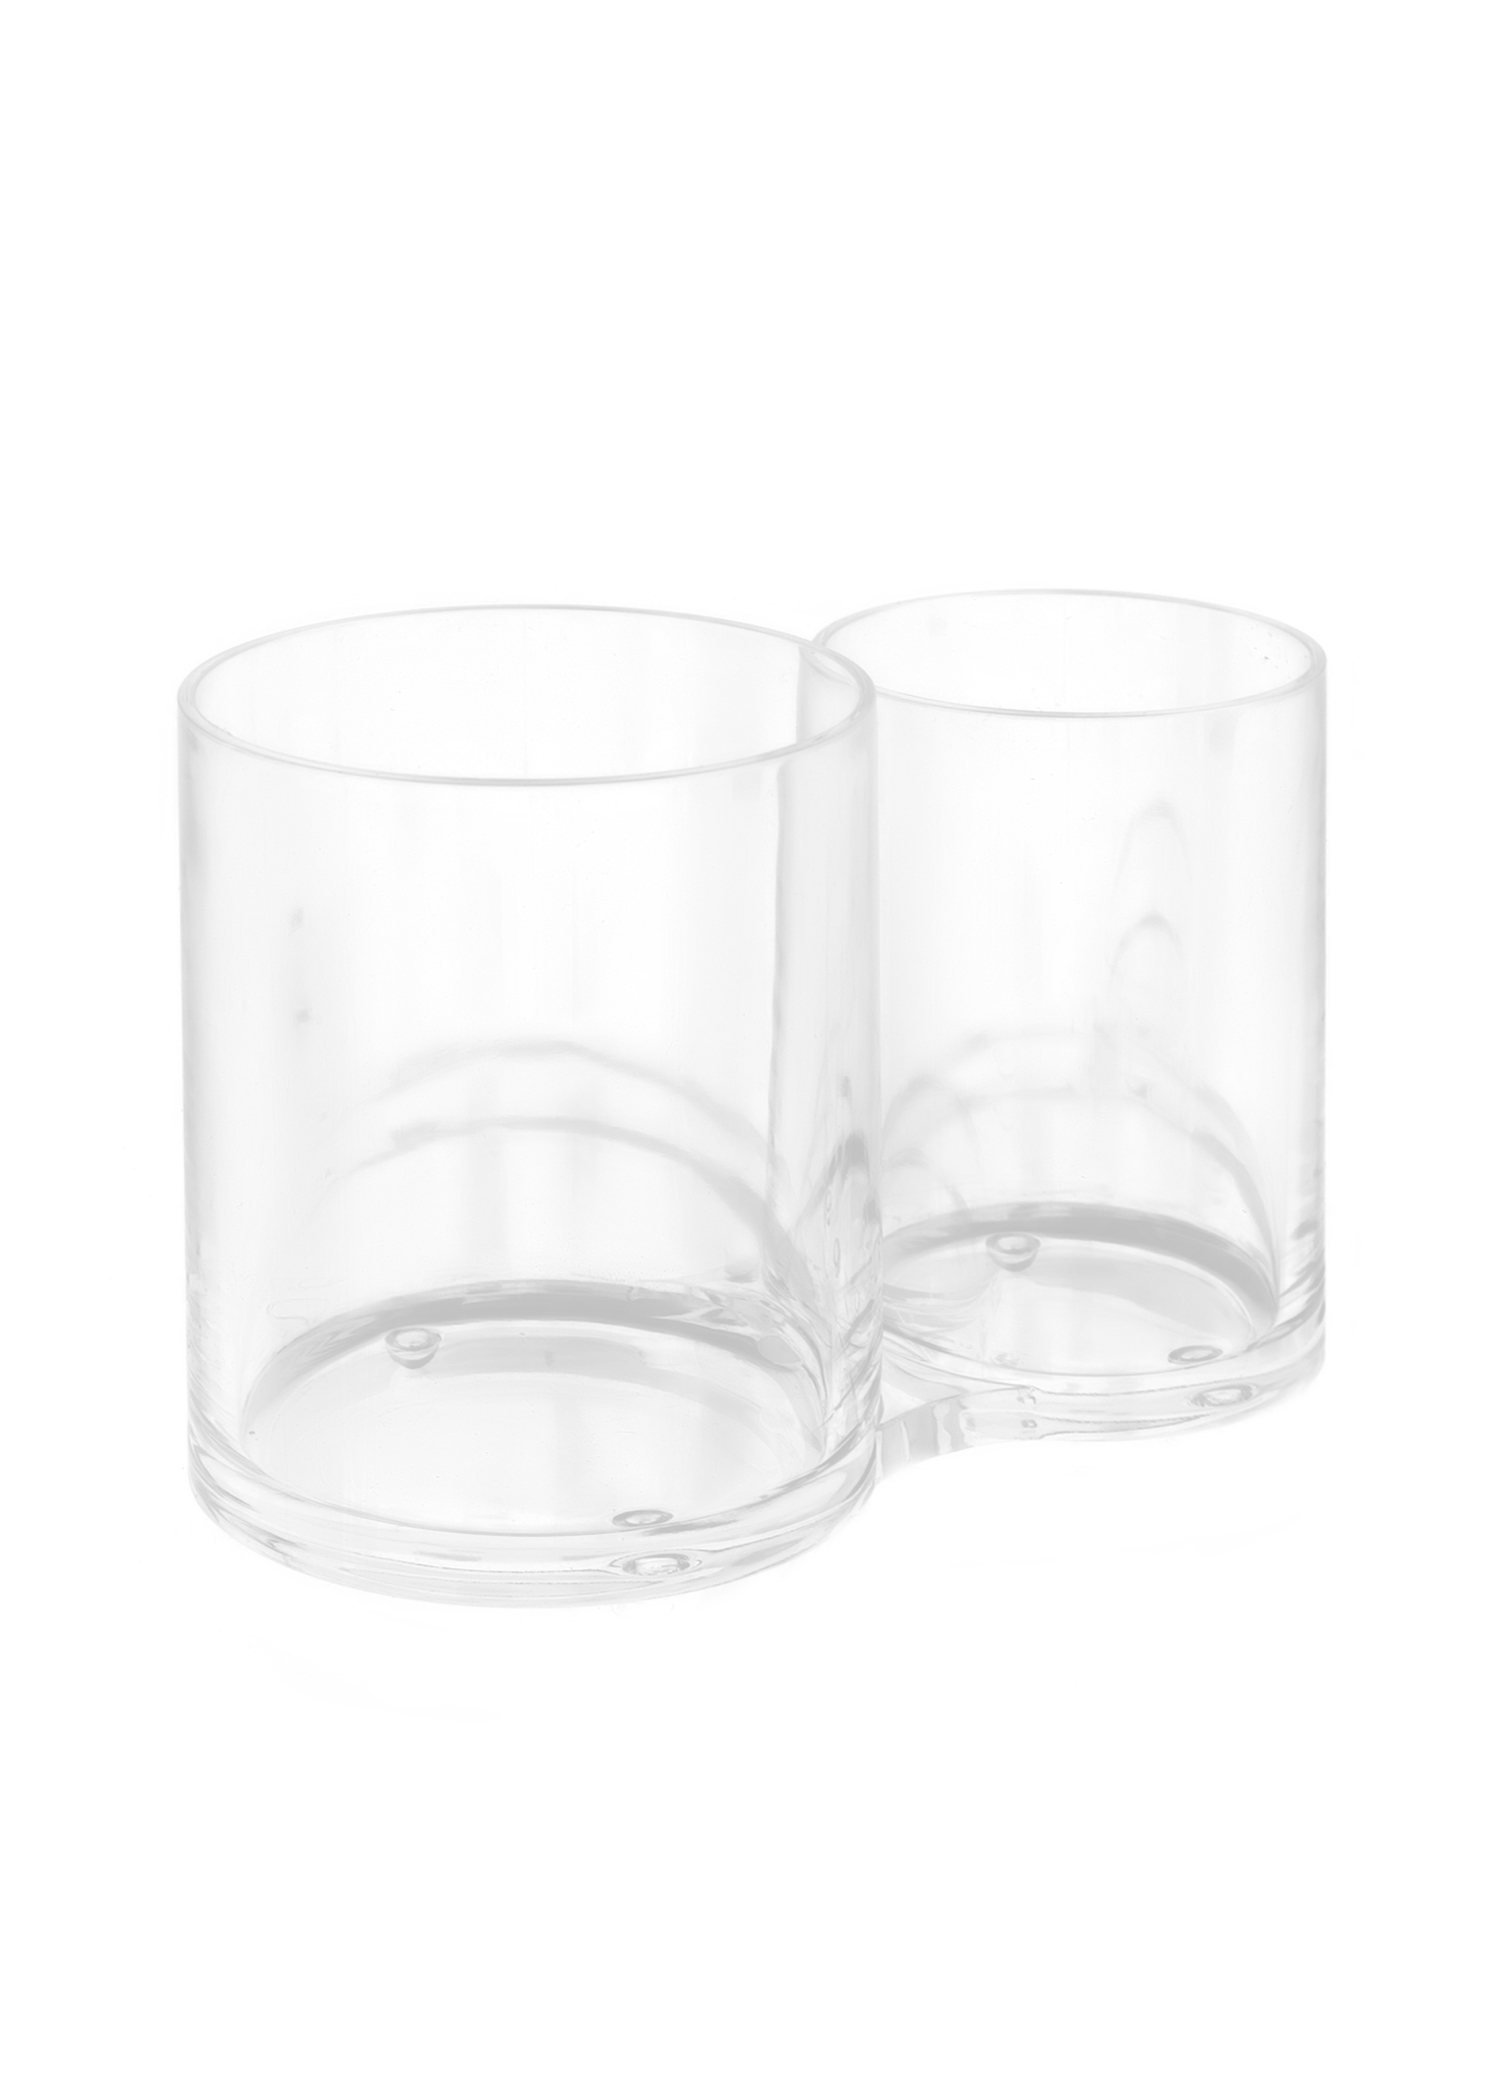 Acrylic Duo Cups Clear Brush Holder  2 Pc PartNumber: 015W008088075001P KsnValue: 8088075 MfgPartNumber: 69C40419I